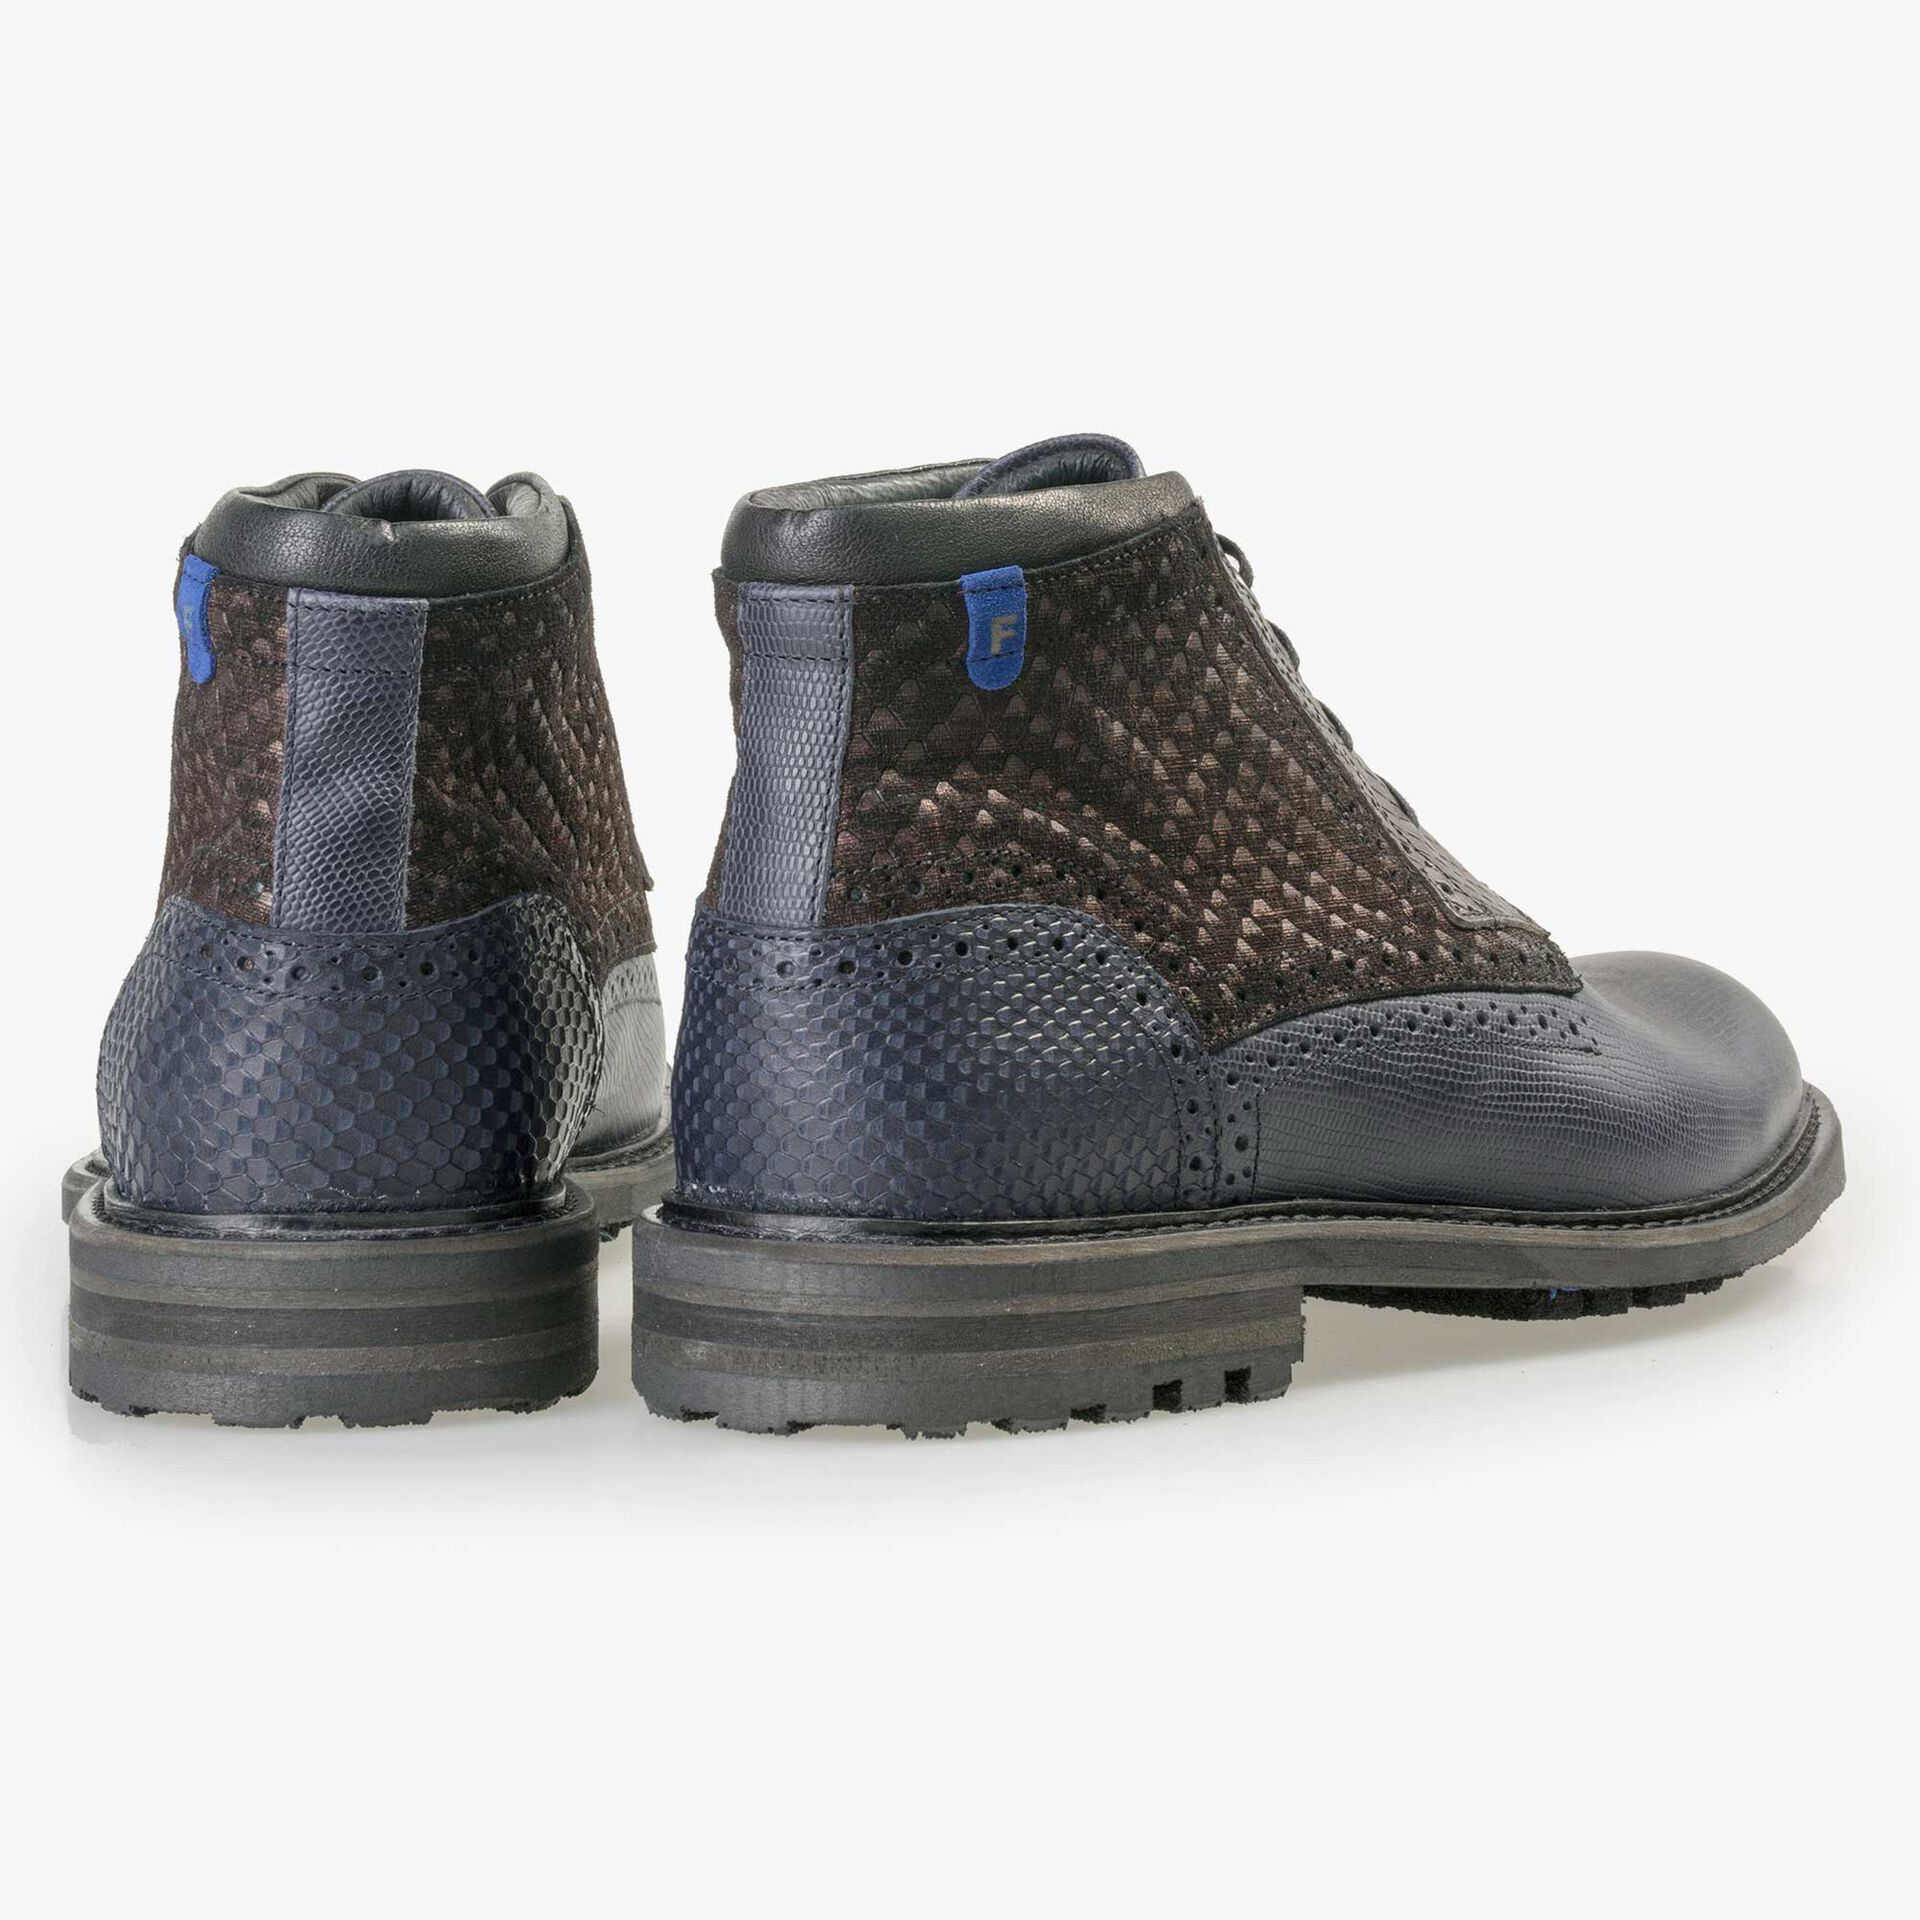 Floris van Bommel men's dark blue leather lace boot finished with a snake print